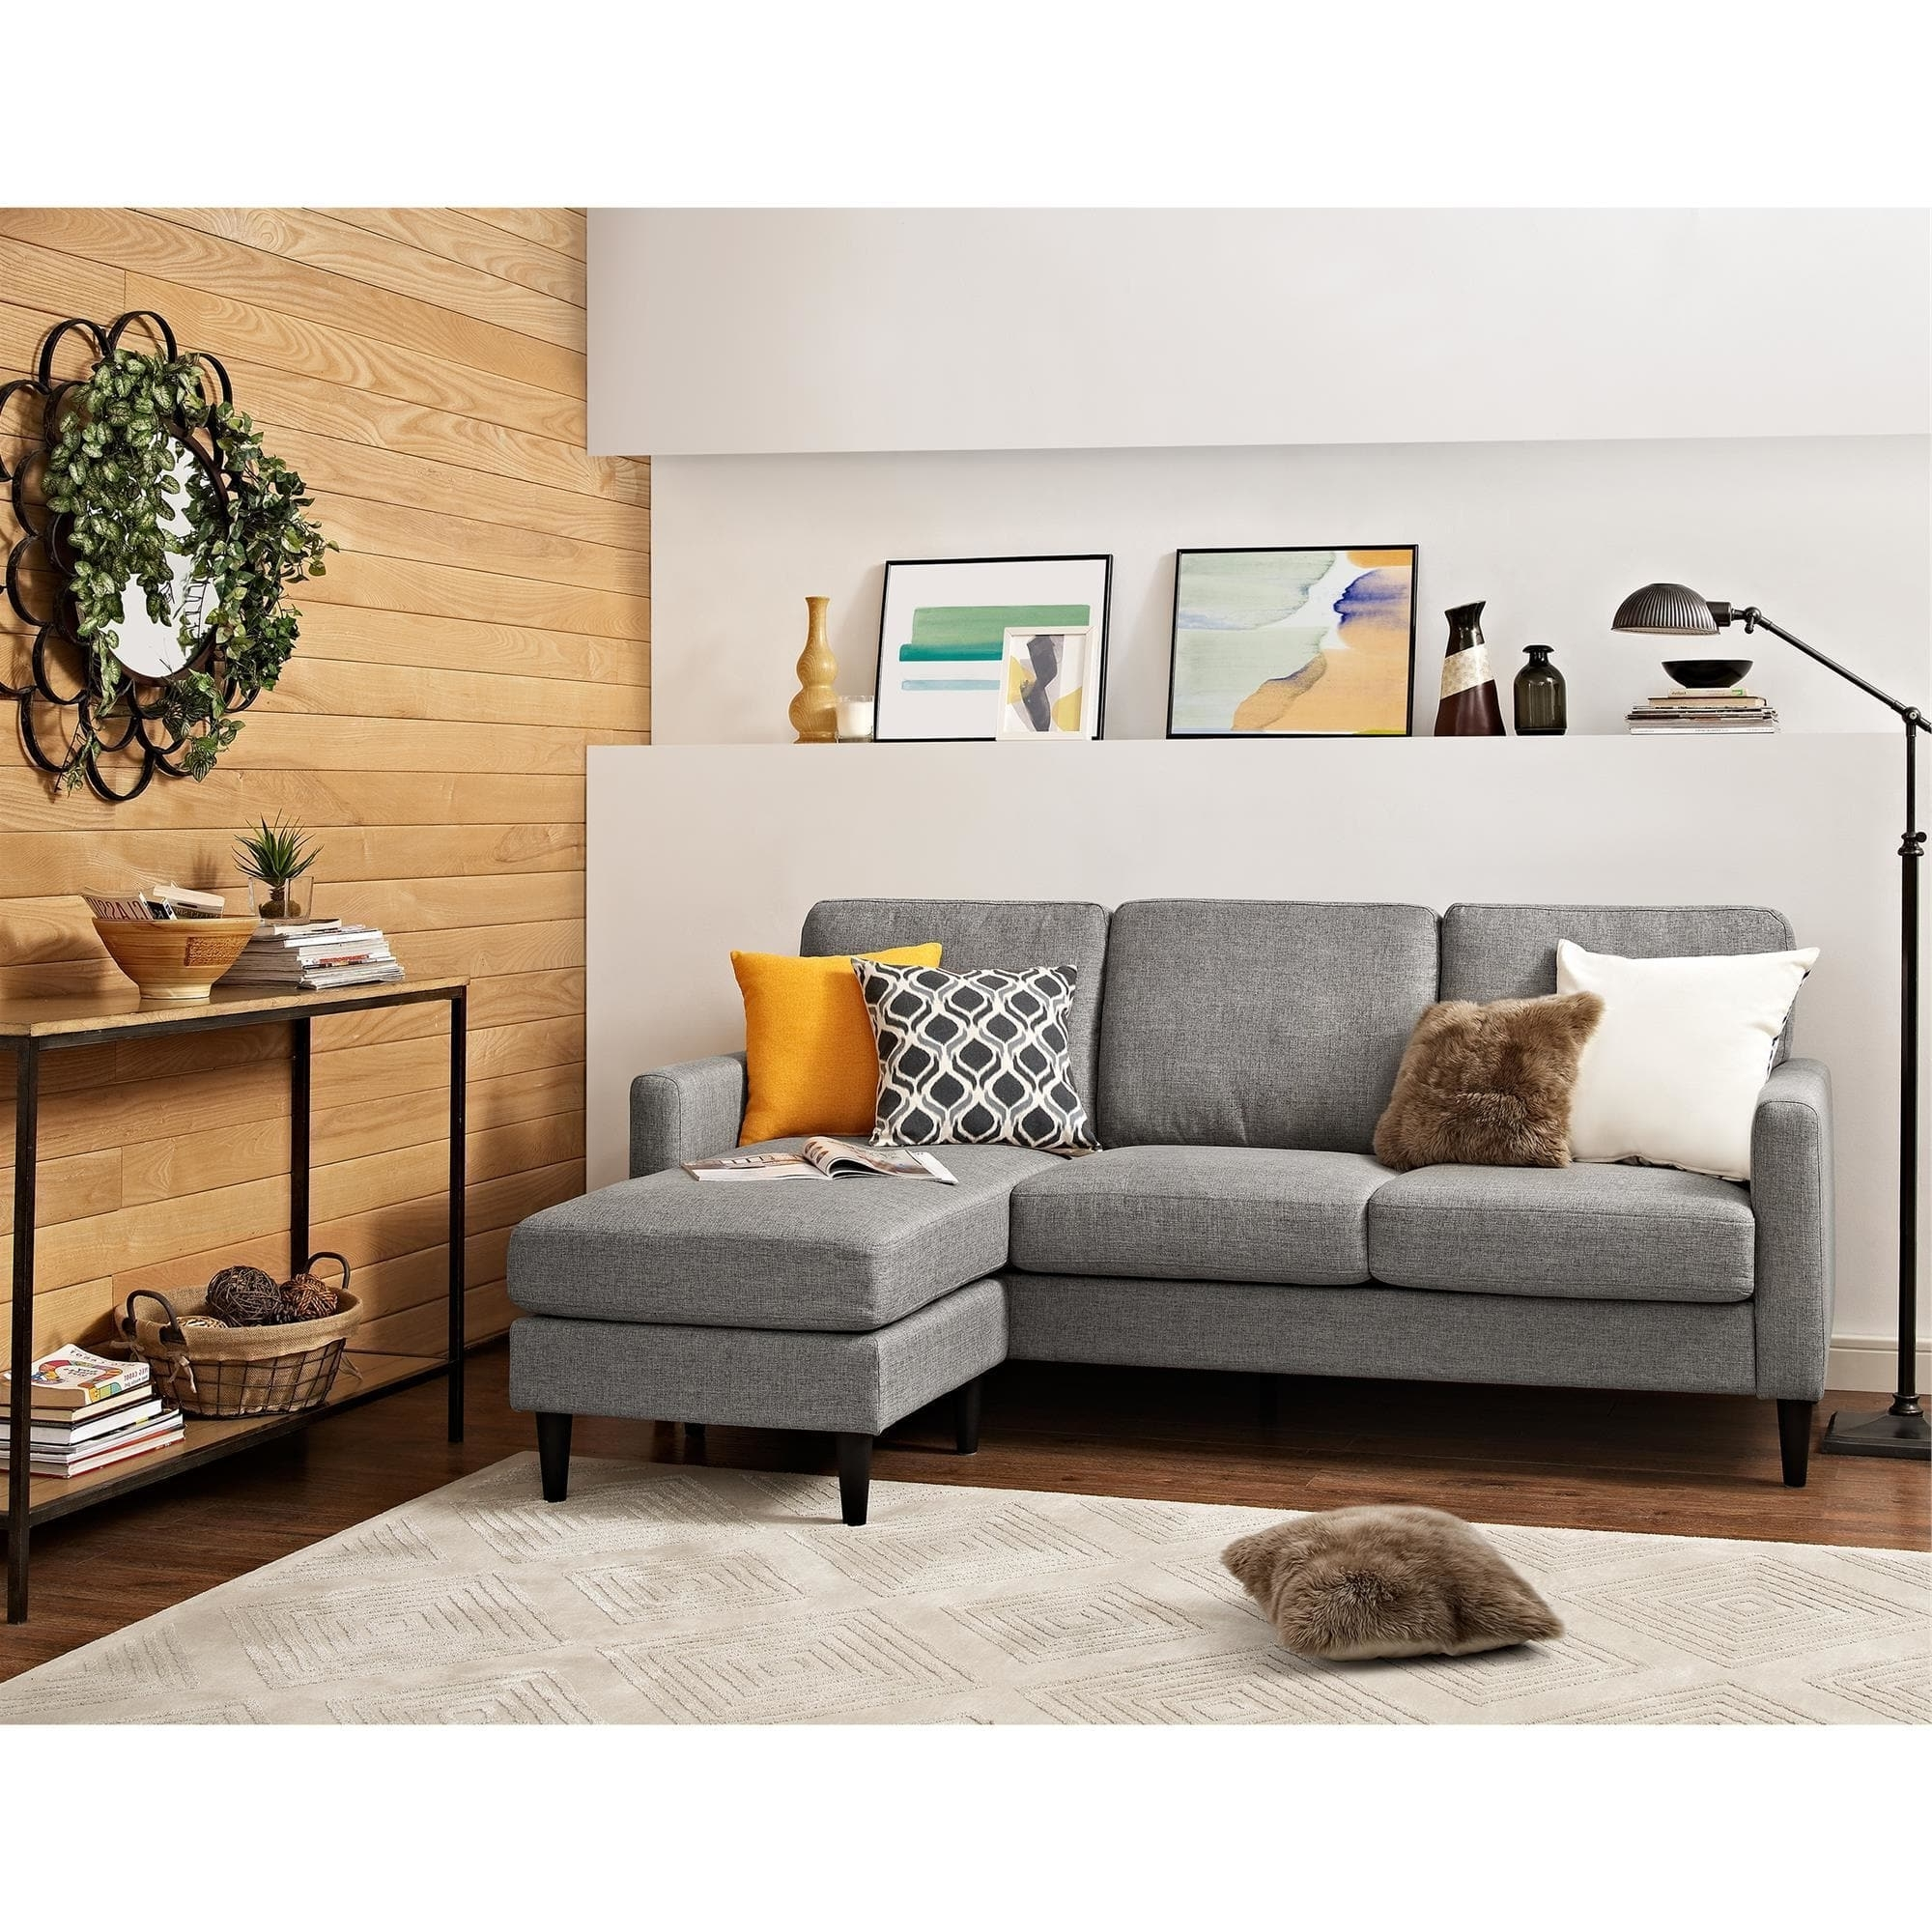 Hawaii Sectional Sofas For Well Known Dorel Living Kaci Grey Sectional Sofa – Free Shipping On Orders (View 8 of 20)